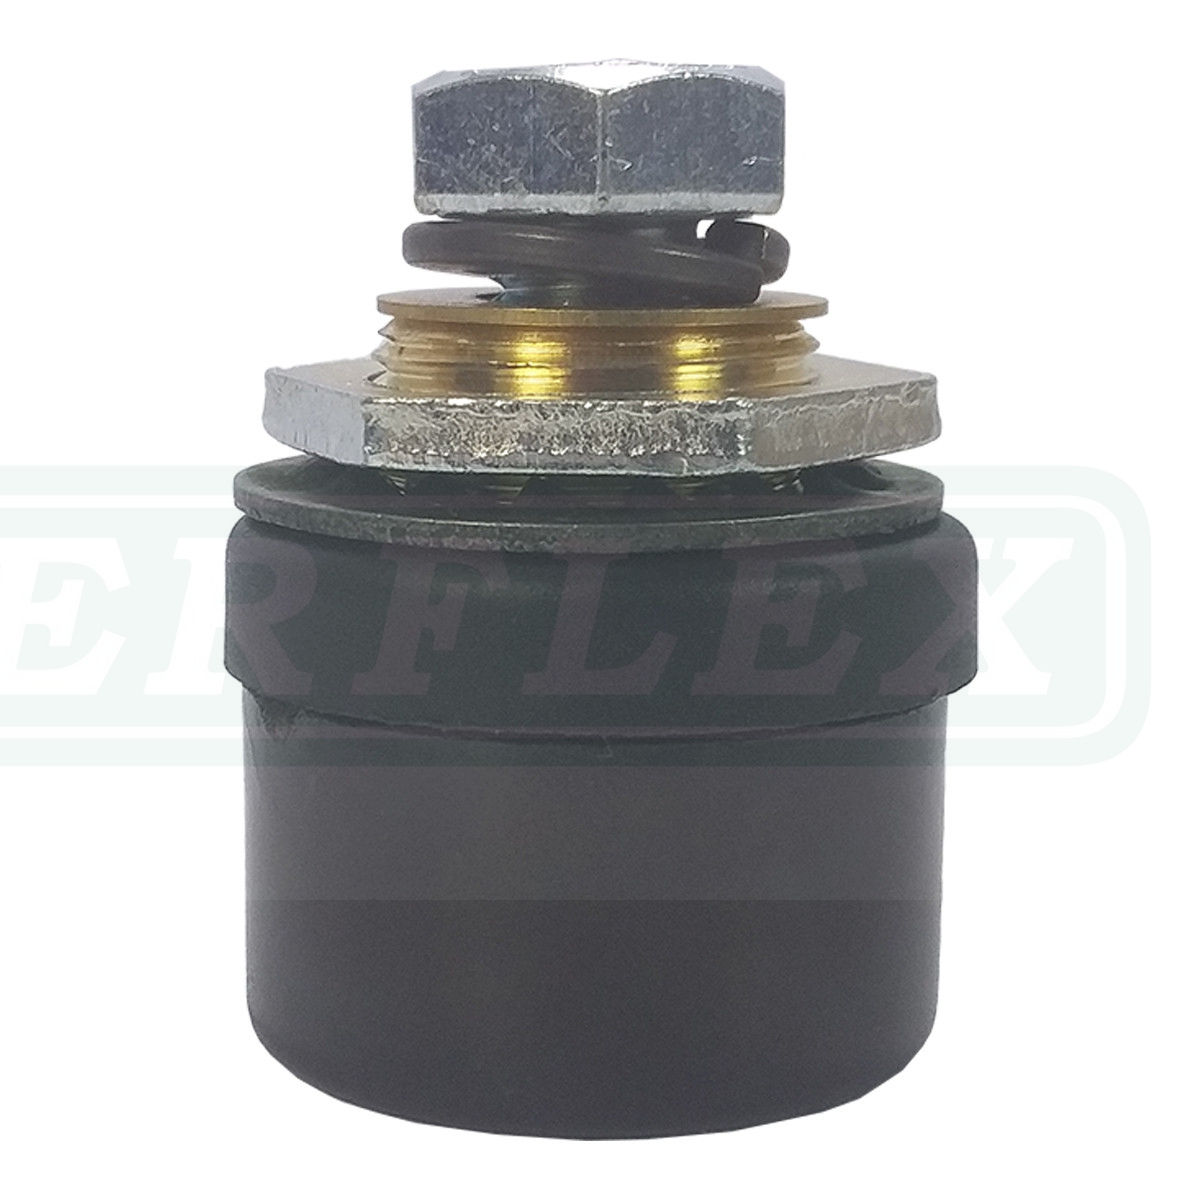 CONECTOR FÊMEA PAINEL 12.8MM 500 AMP EXT 38MM 0908413 ESAB